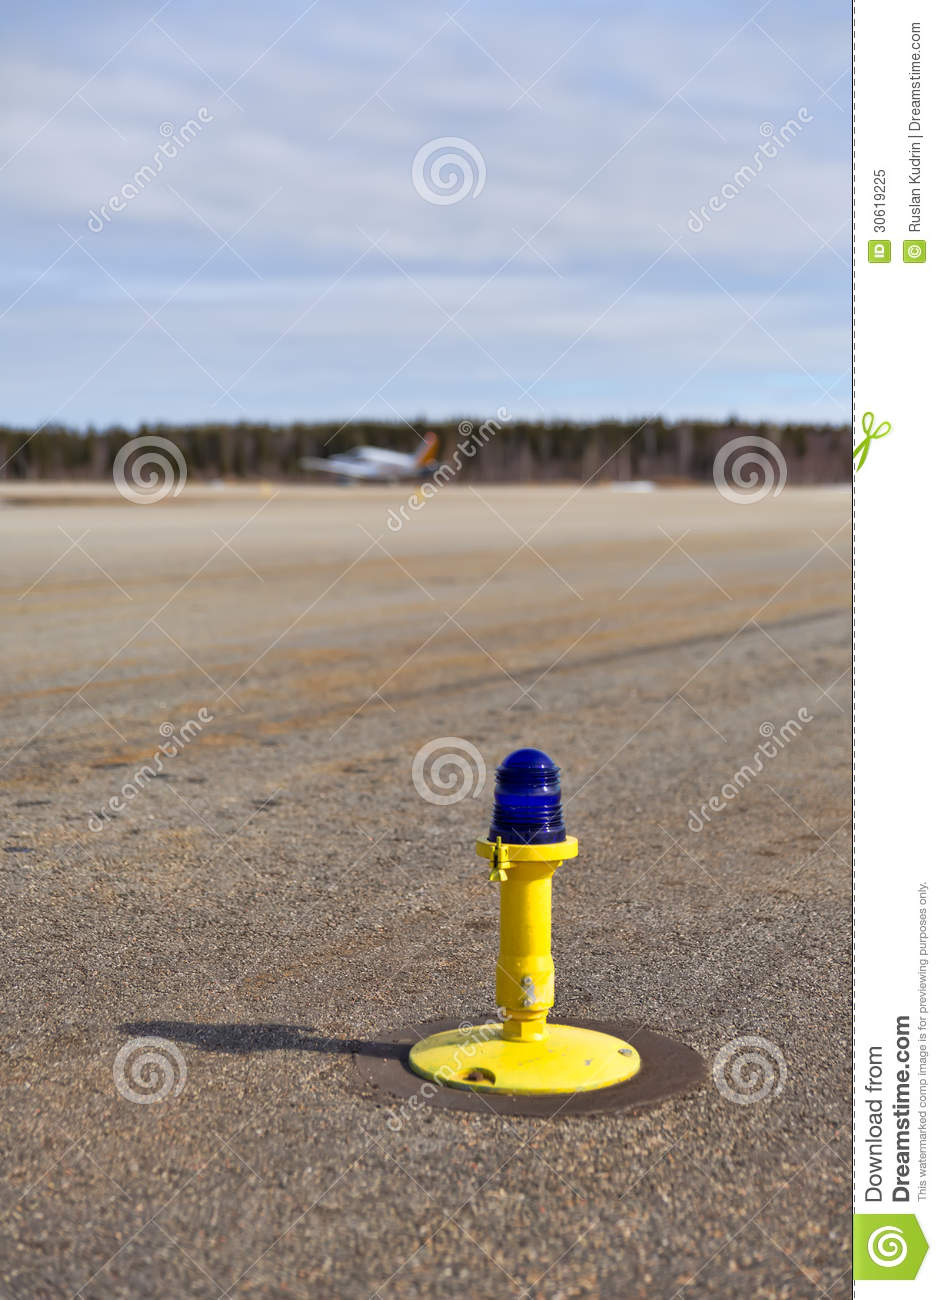 Light on taxiway stock image  Image of outdoors, aviation